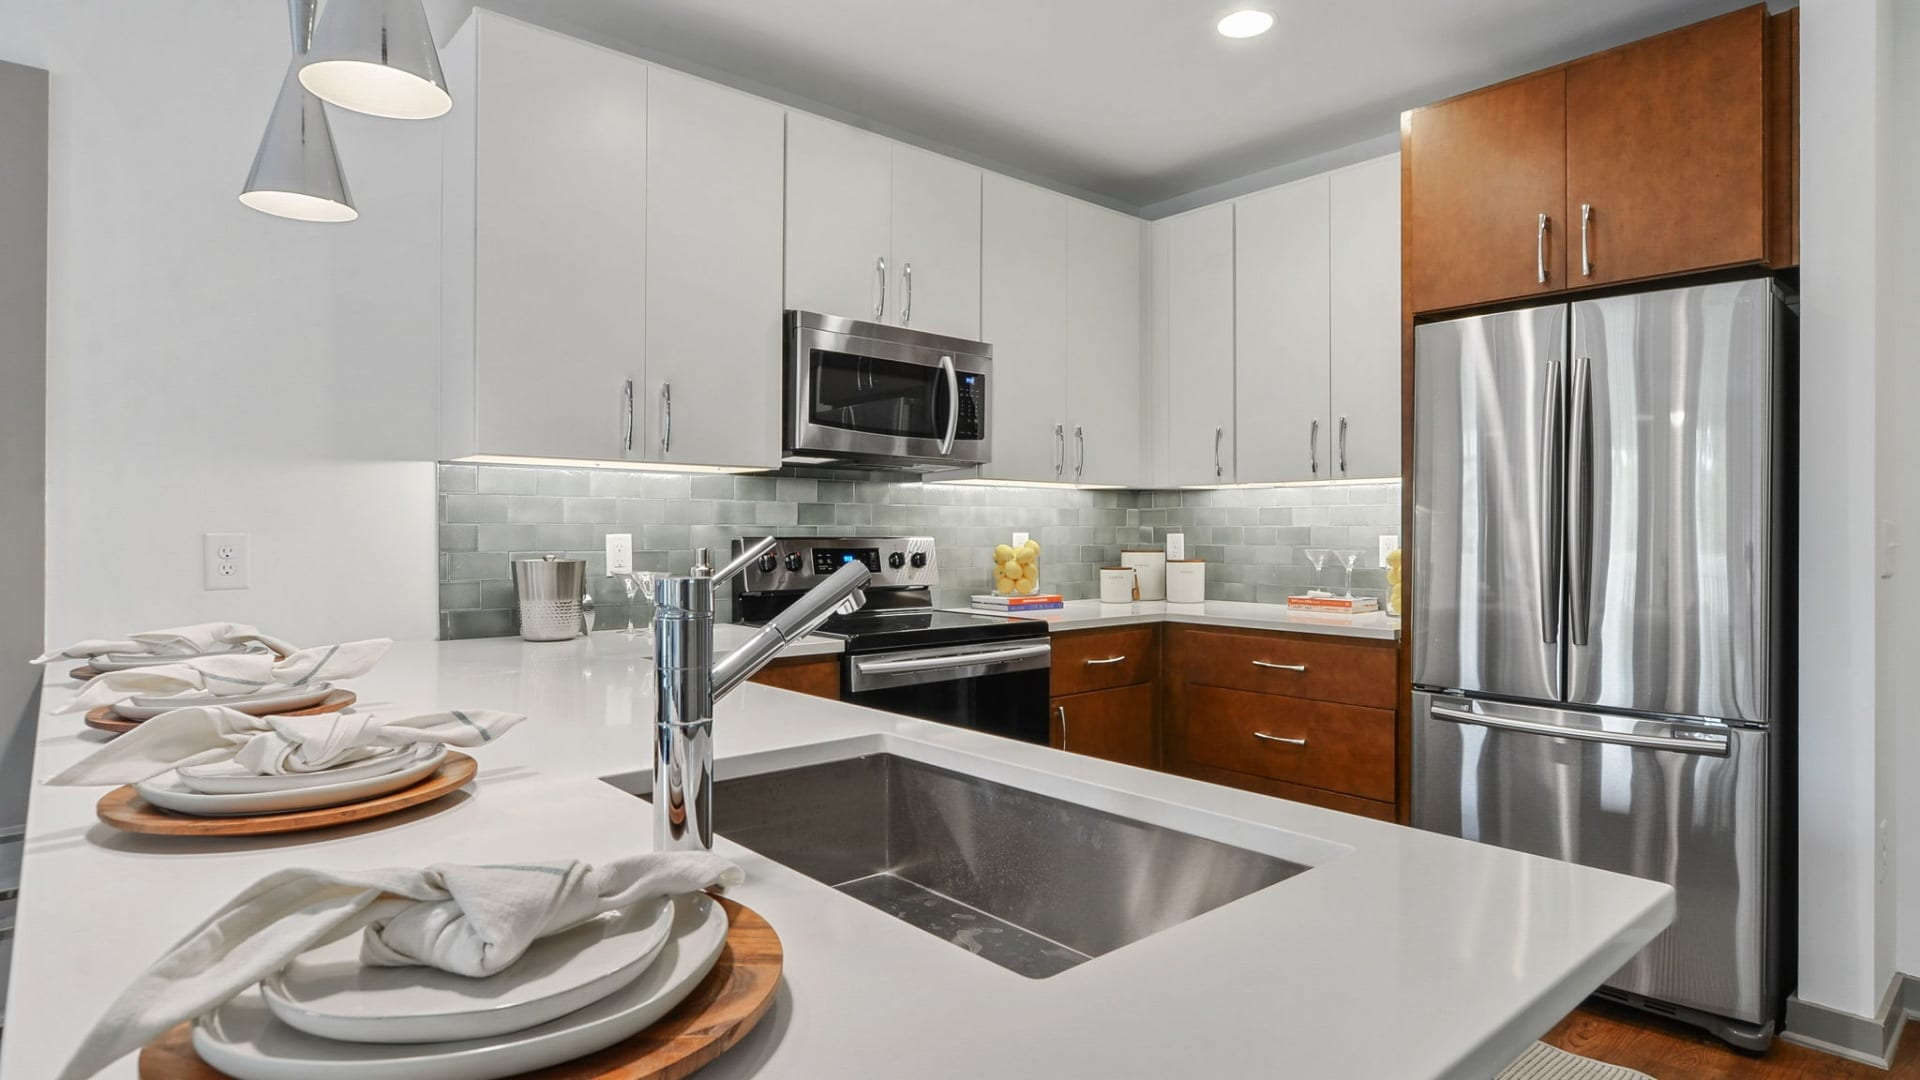 Designer kitchen at apartments in South Tampa, FL